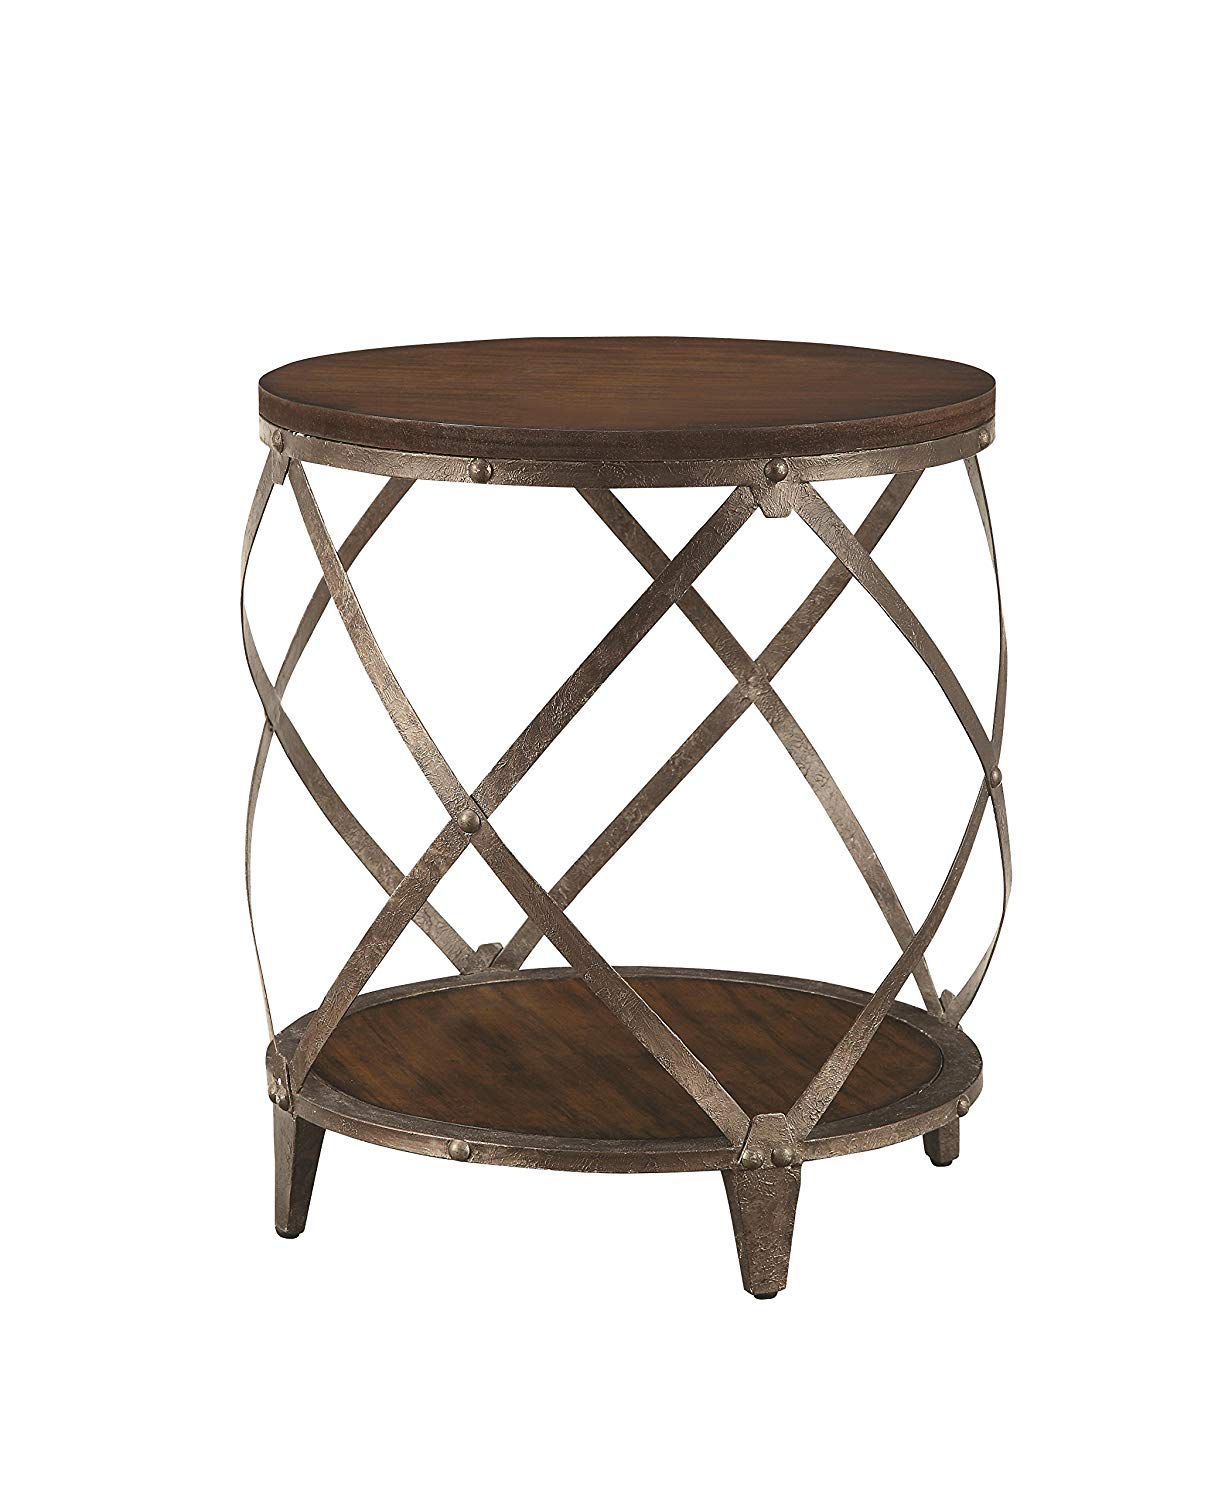 metal accent table with drum shape brown kitchen dining threshold copper console drawers ikea summer clearance patio furniture small square coffee pottery barn bench target mirror